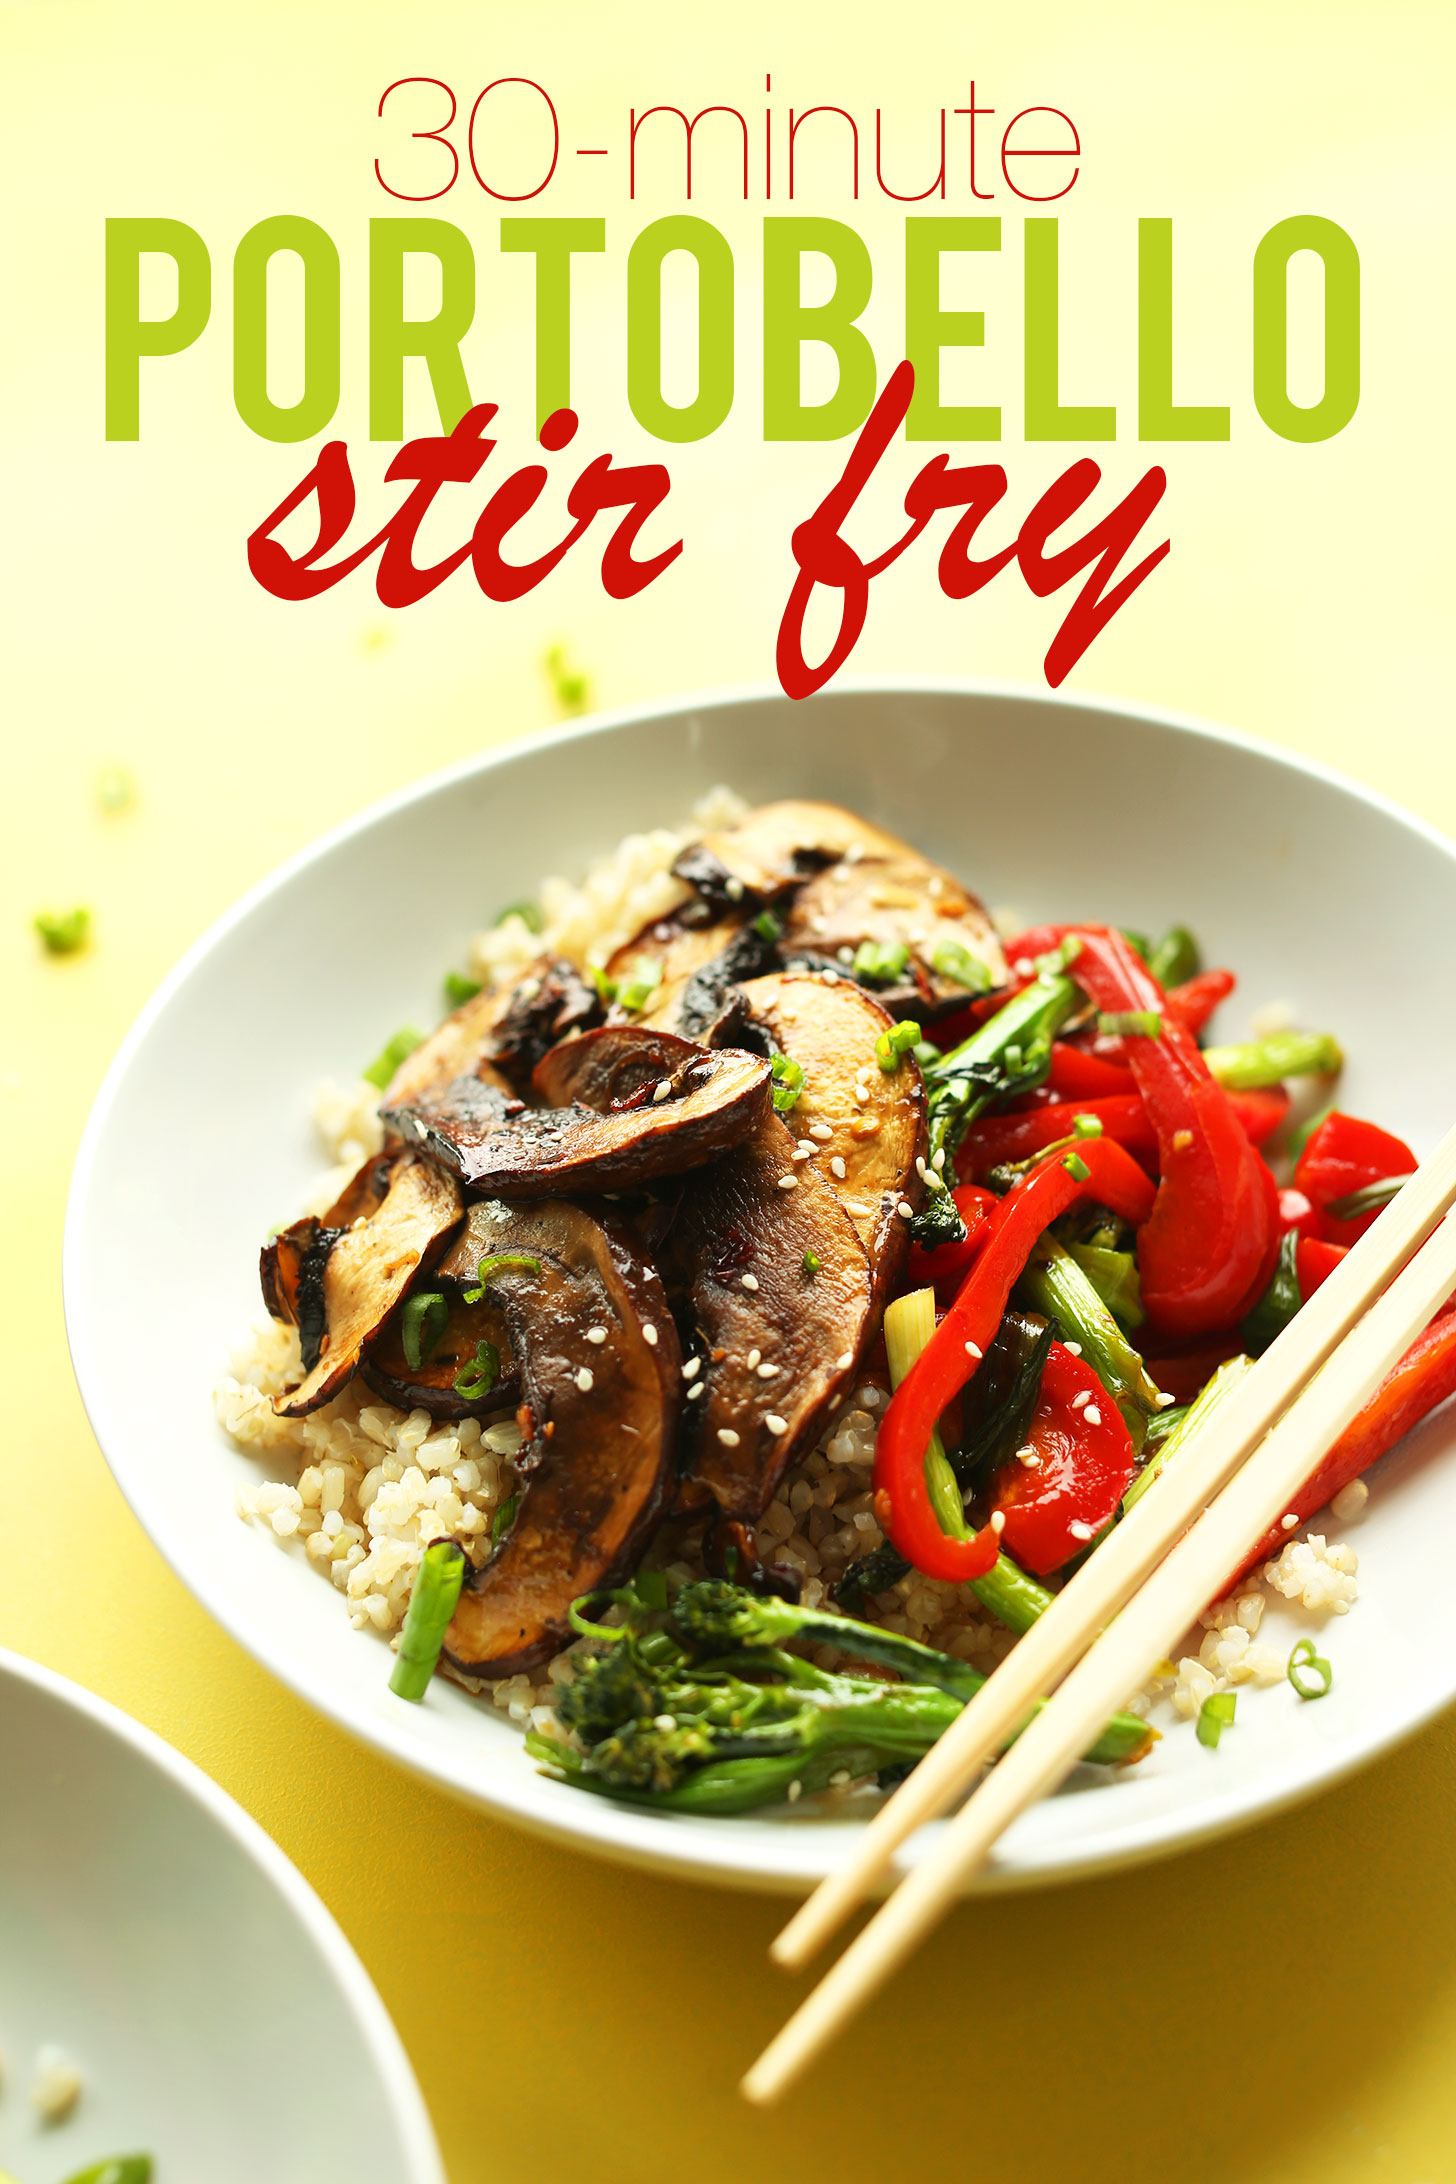 Bowl of our gluten-free vegan Portobello Mushroom Stir Fry recipe served over rice